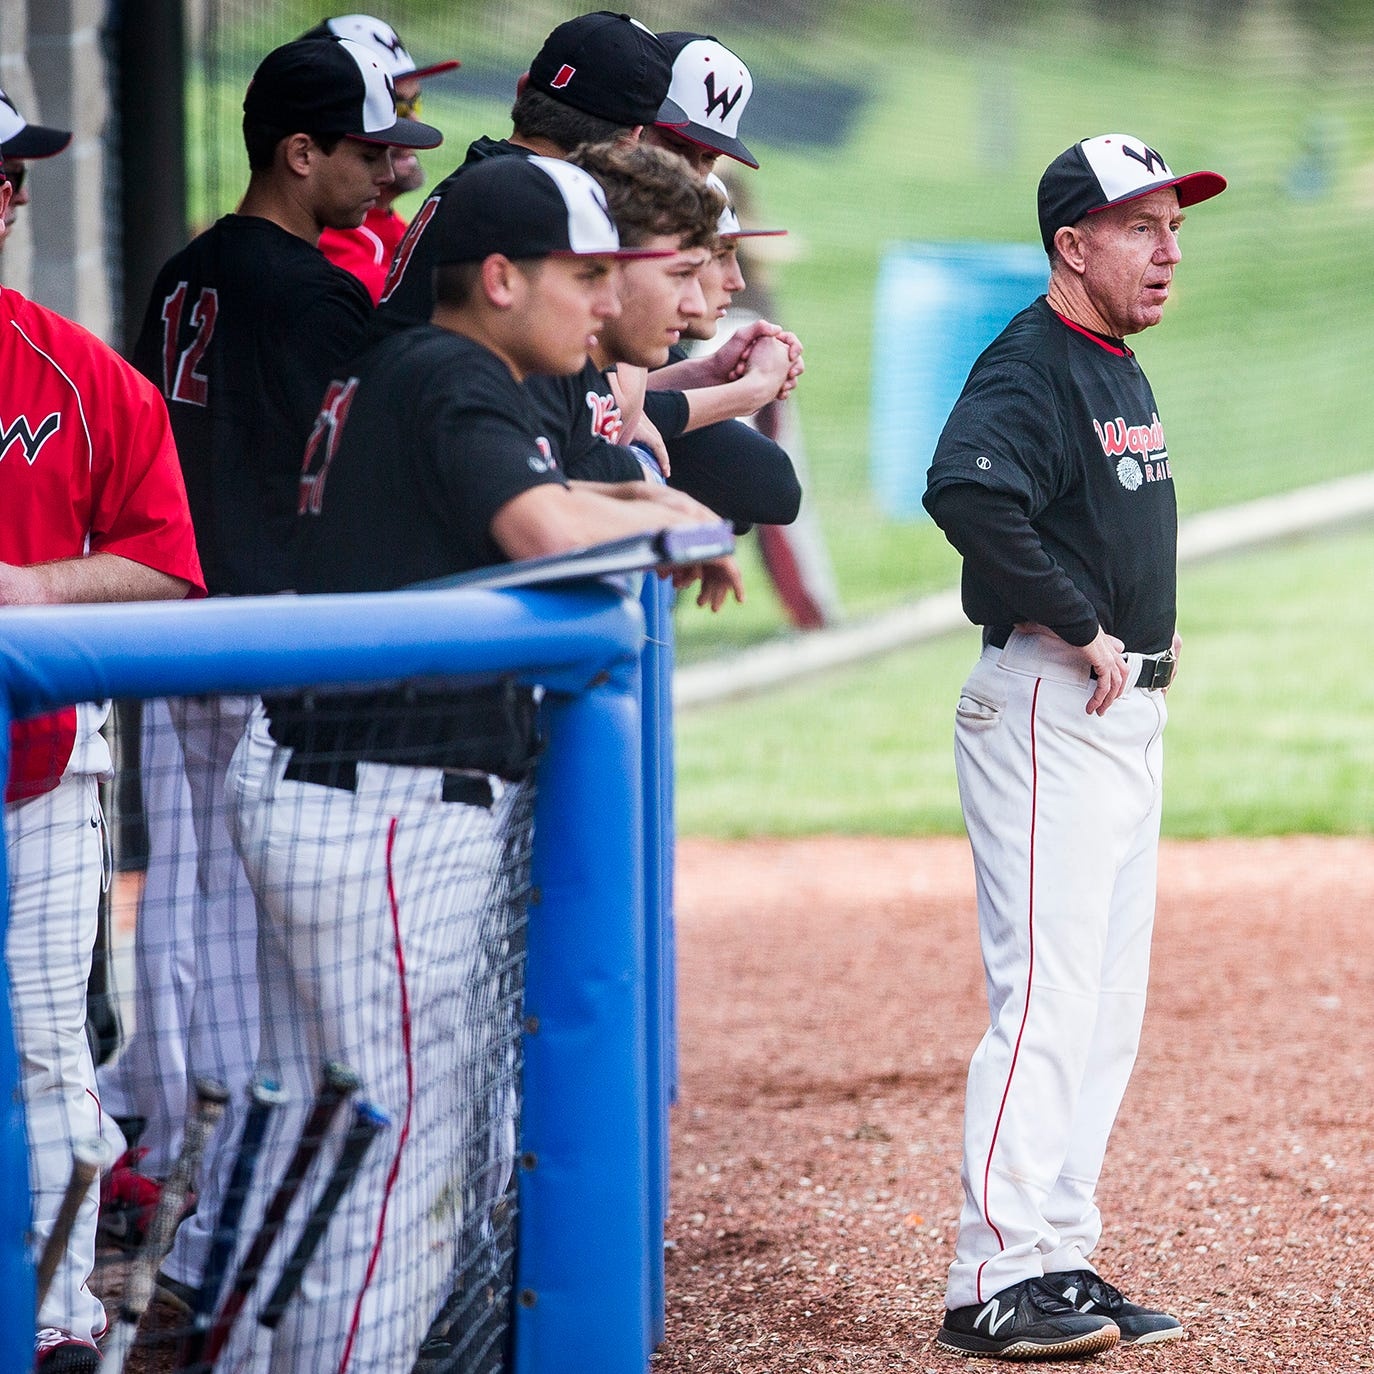 5 questions: Wapahani baseball coach Brian Dudley talks walk-up songs, winning and more